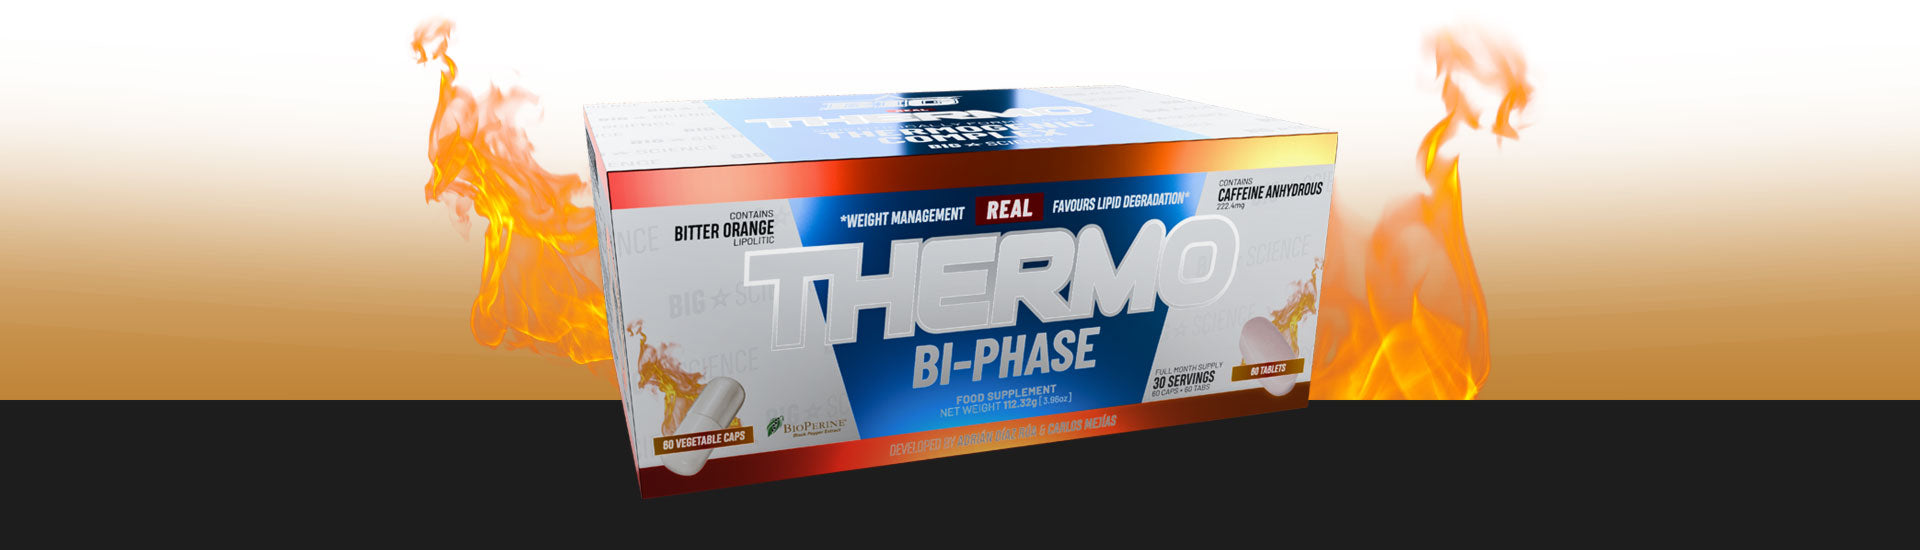 BIGscience - REAL THERMO